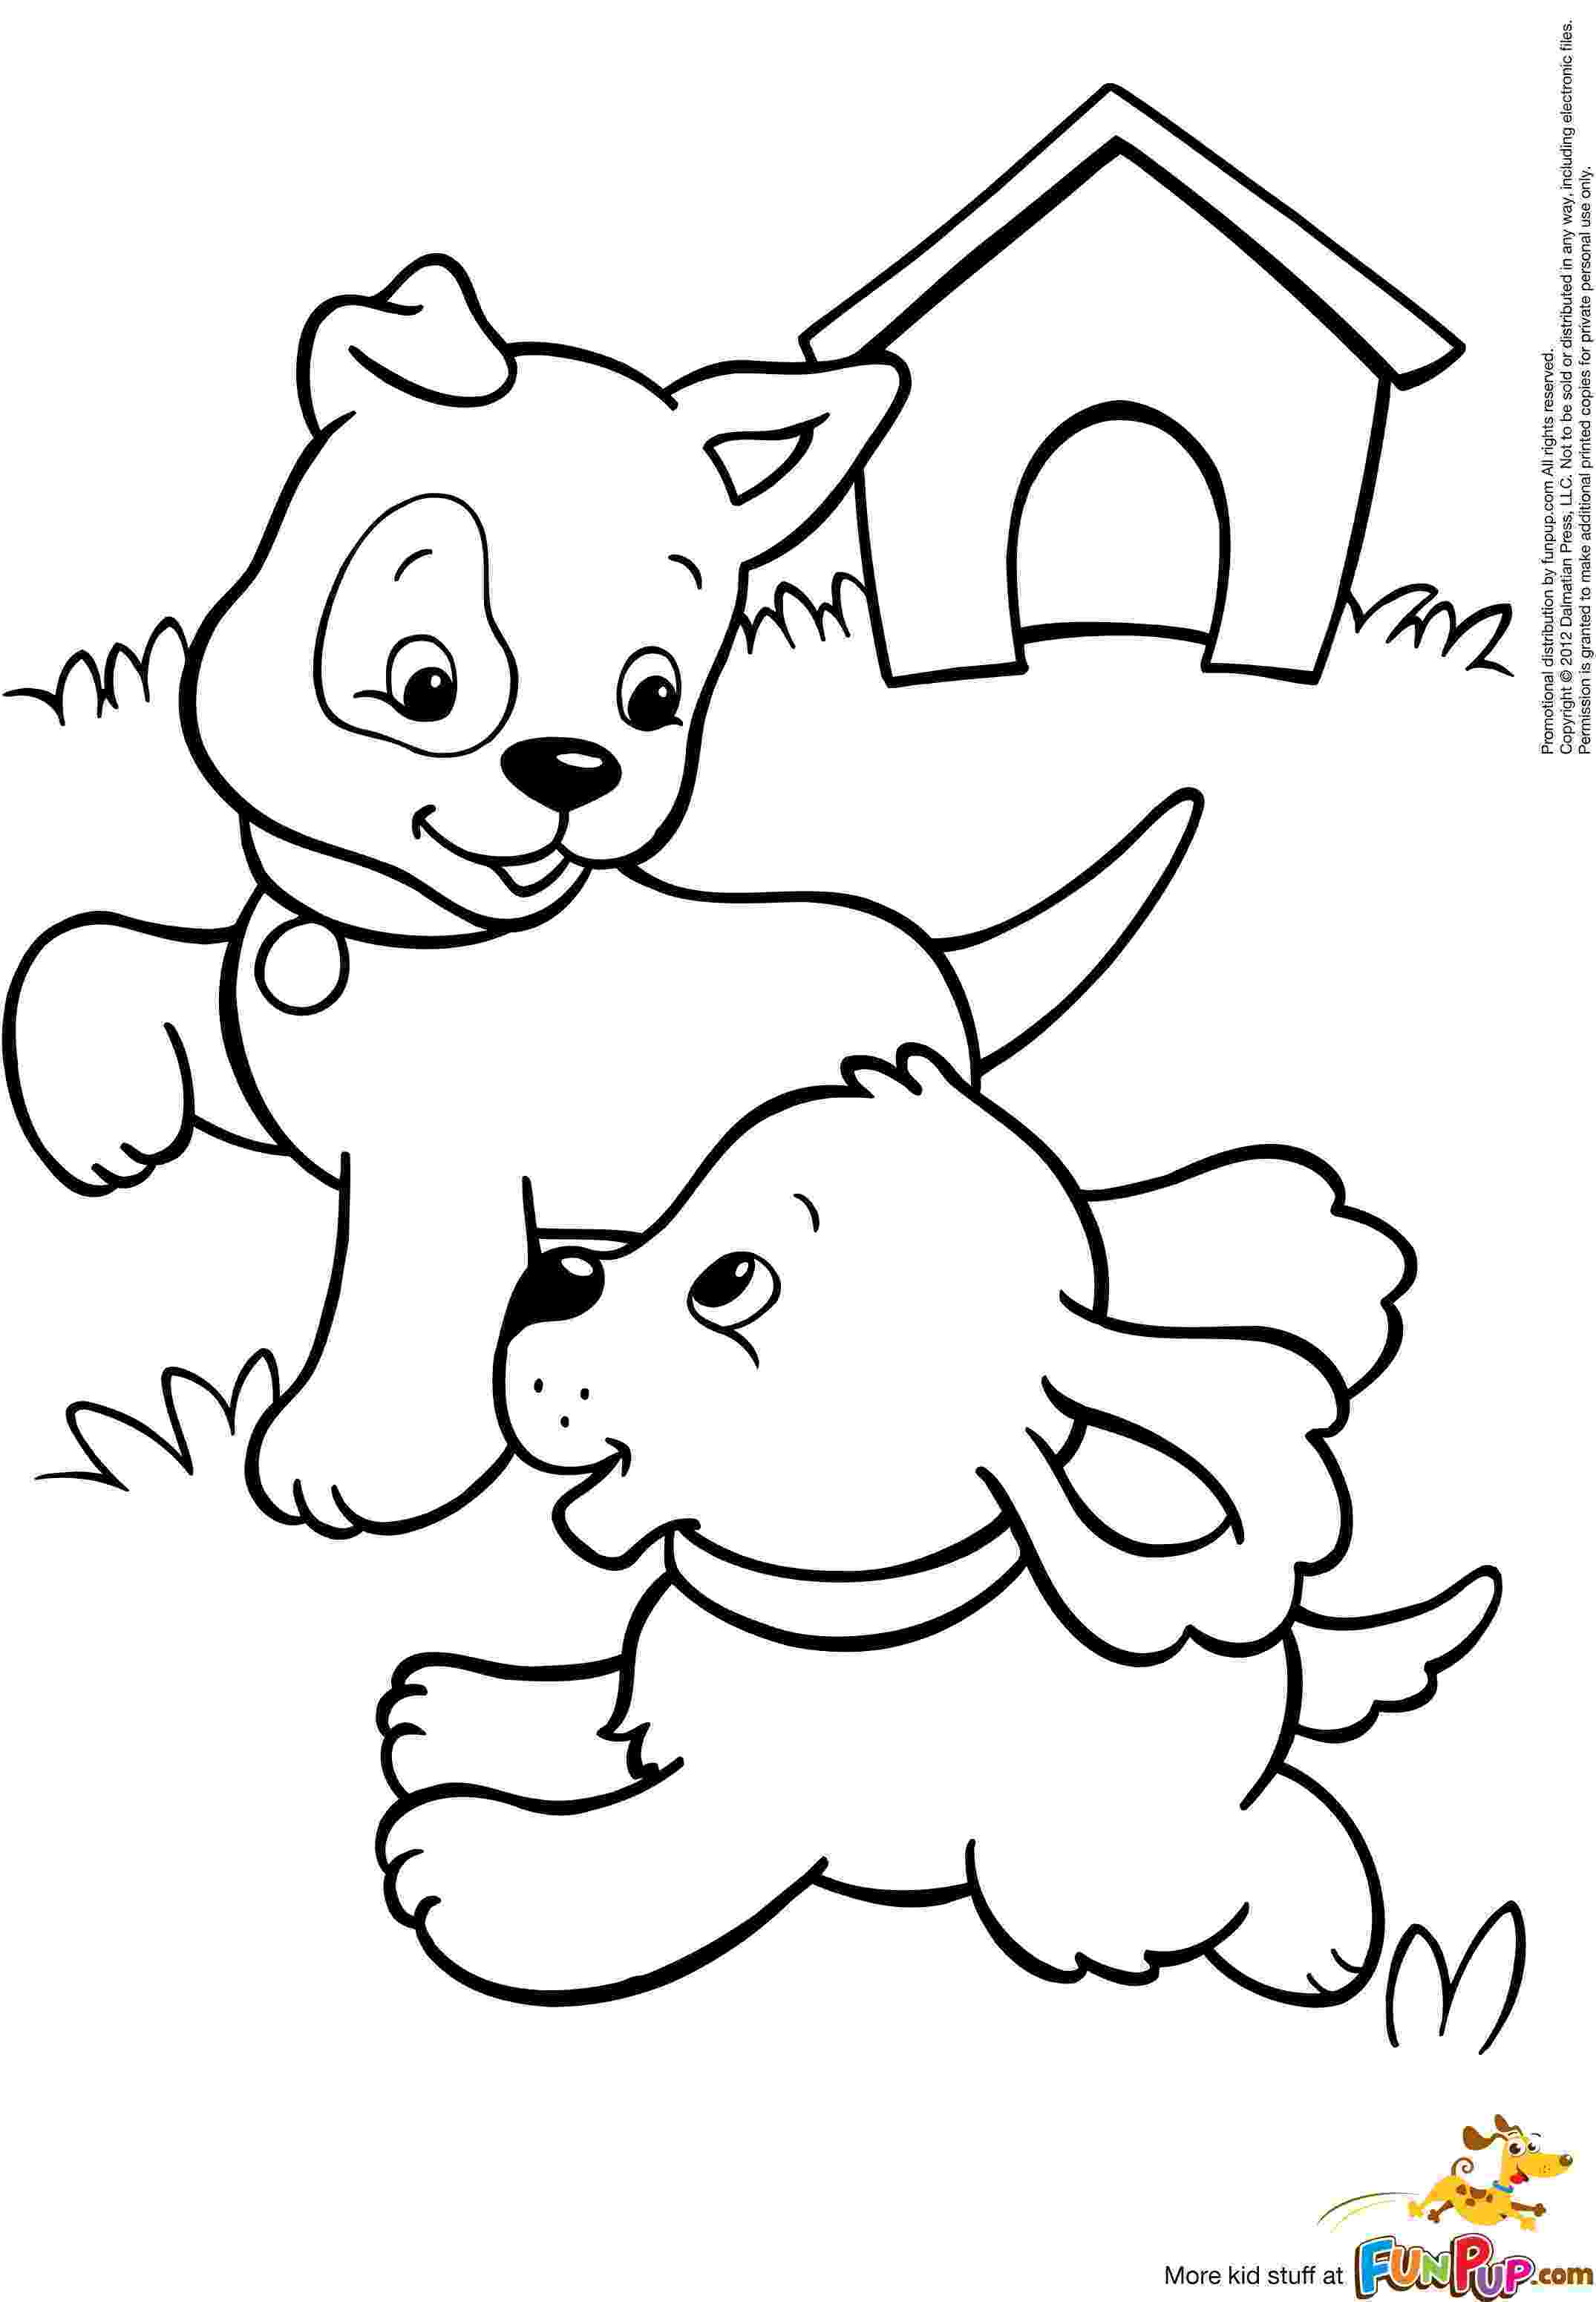 free dog coloring pages heart balloon clifford the big red dog coloring page dog dog pages coloring free